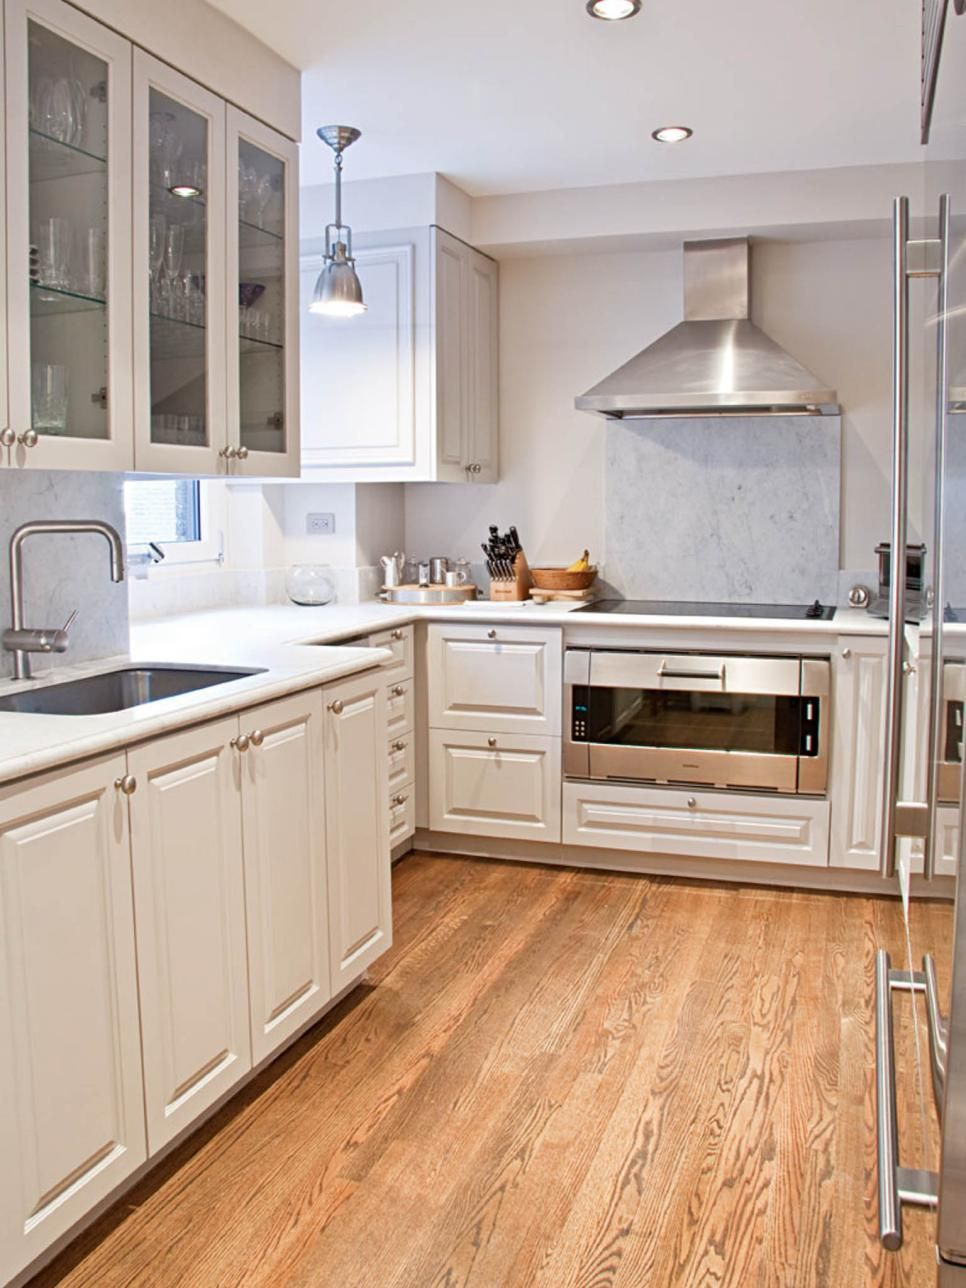 Pictures of Small Kitchen Design Ideas From Small kitchen layouts